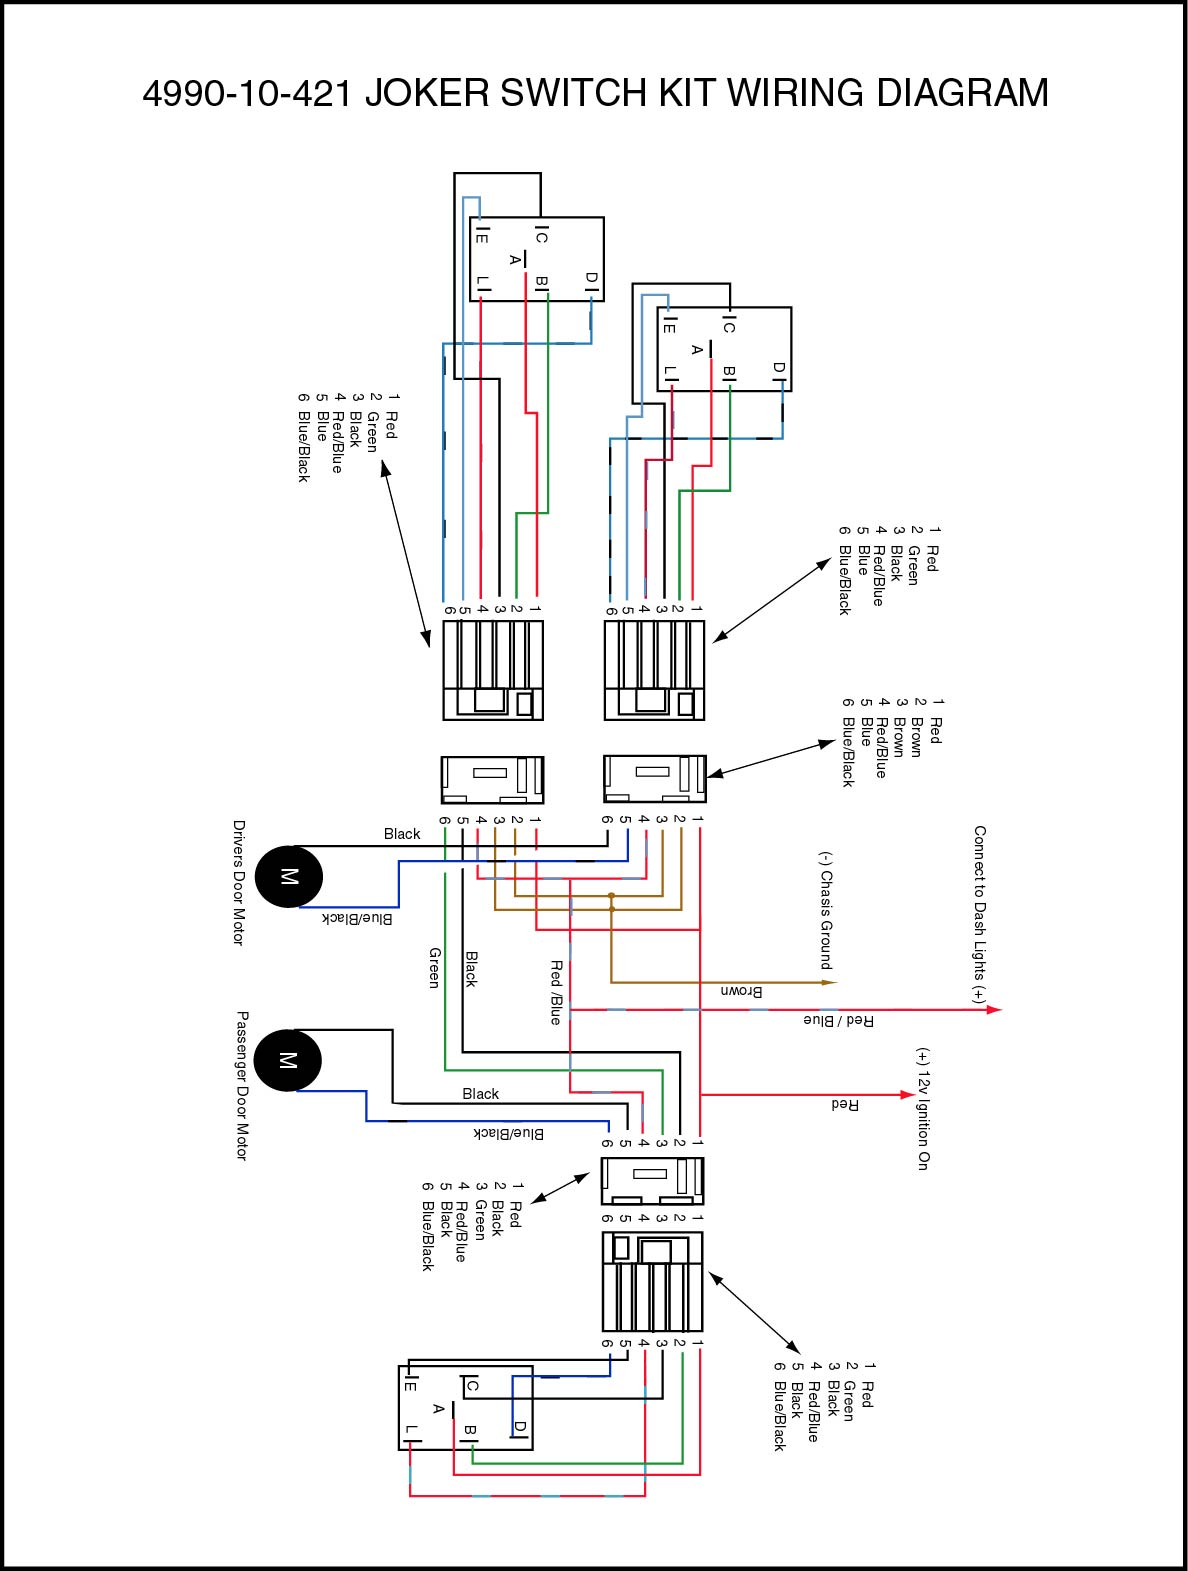 Diagram Power Window Kit Wiring Diagram Full Version Hd Quality Wiring Diagram Diagramteril Corocrozdalastria It